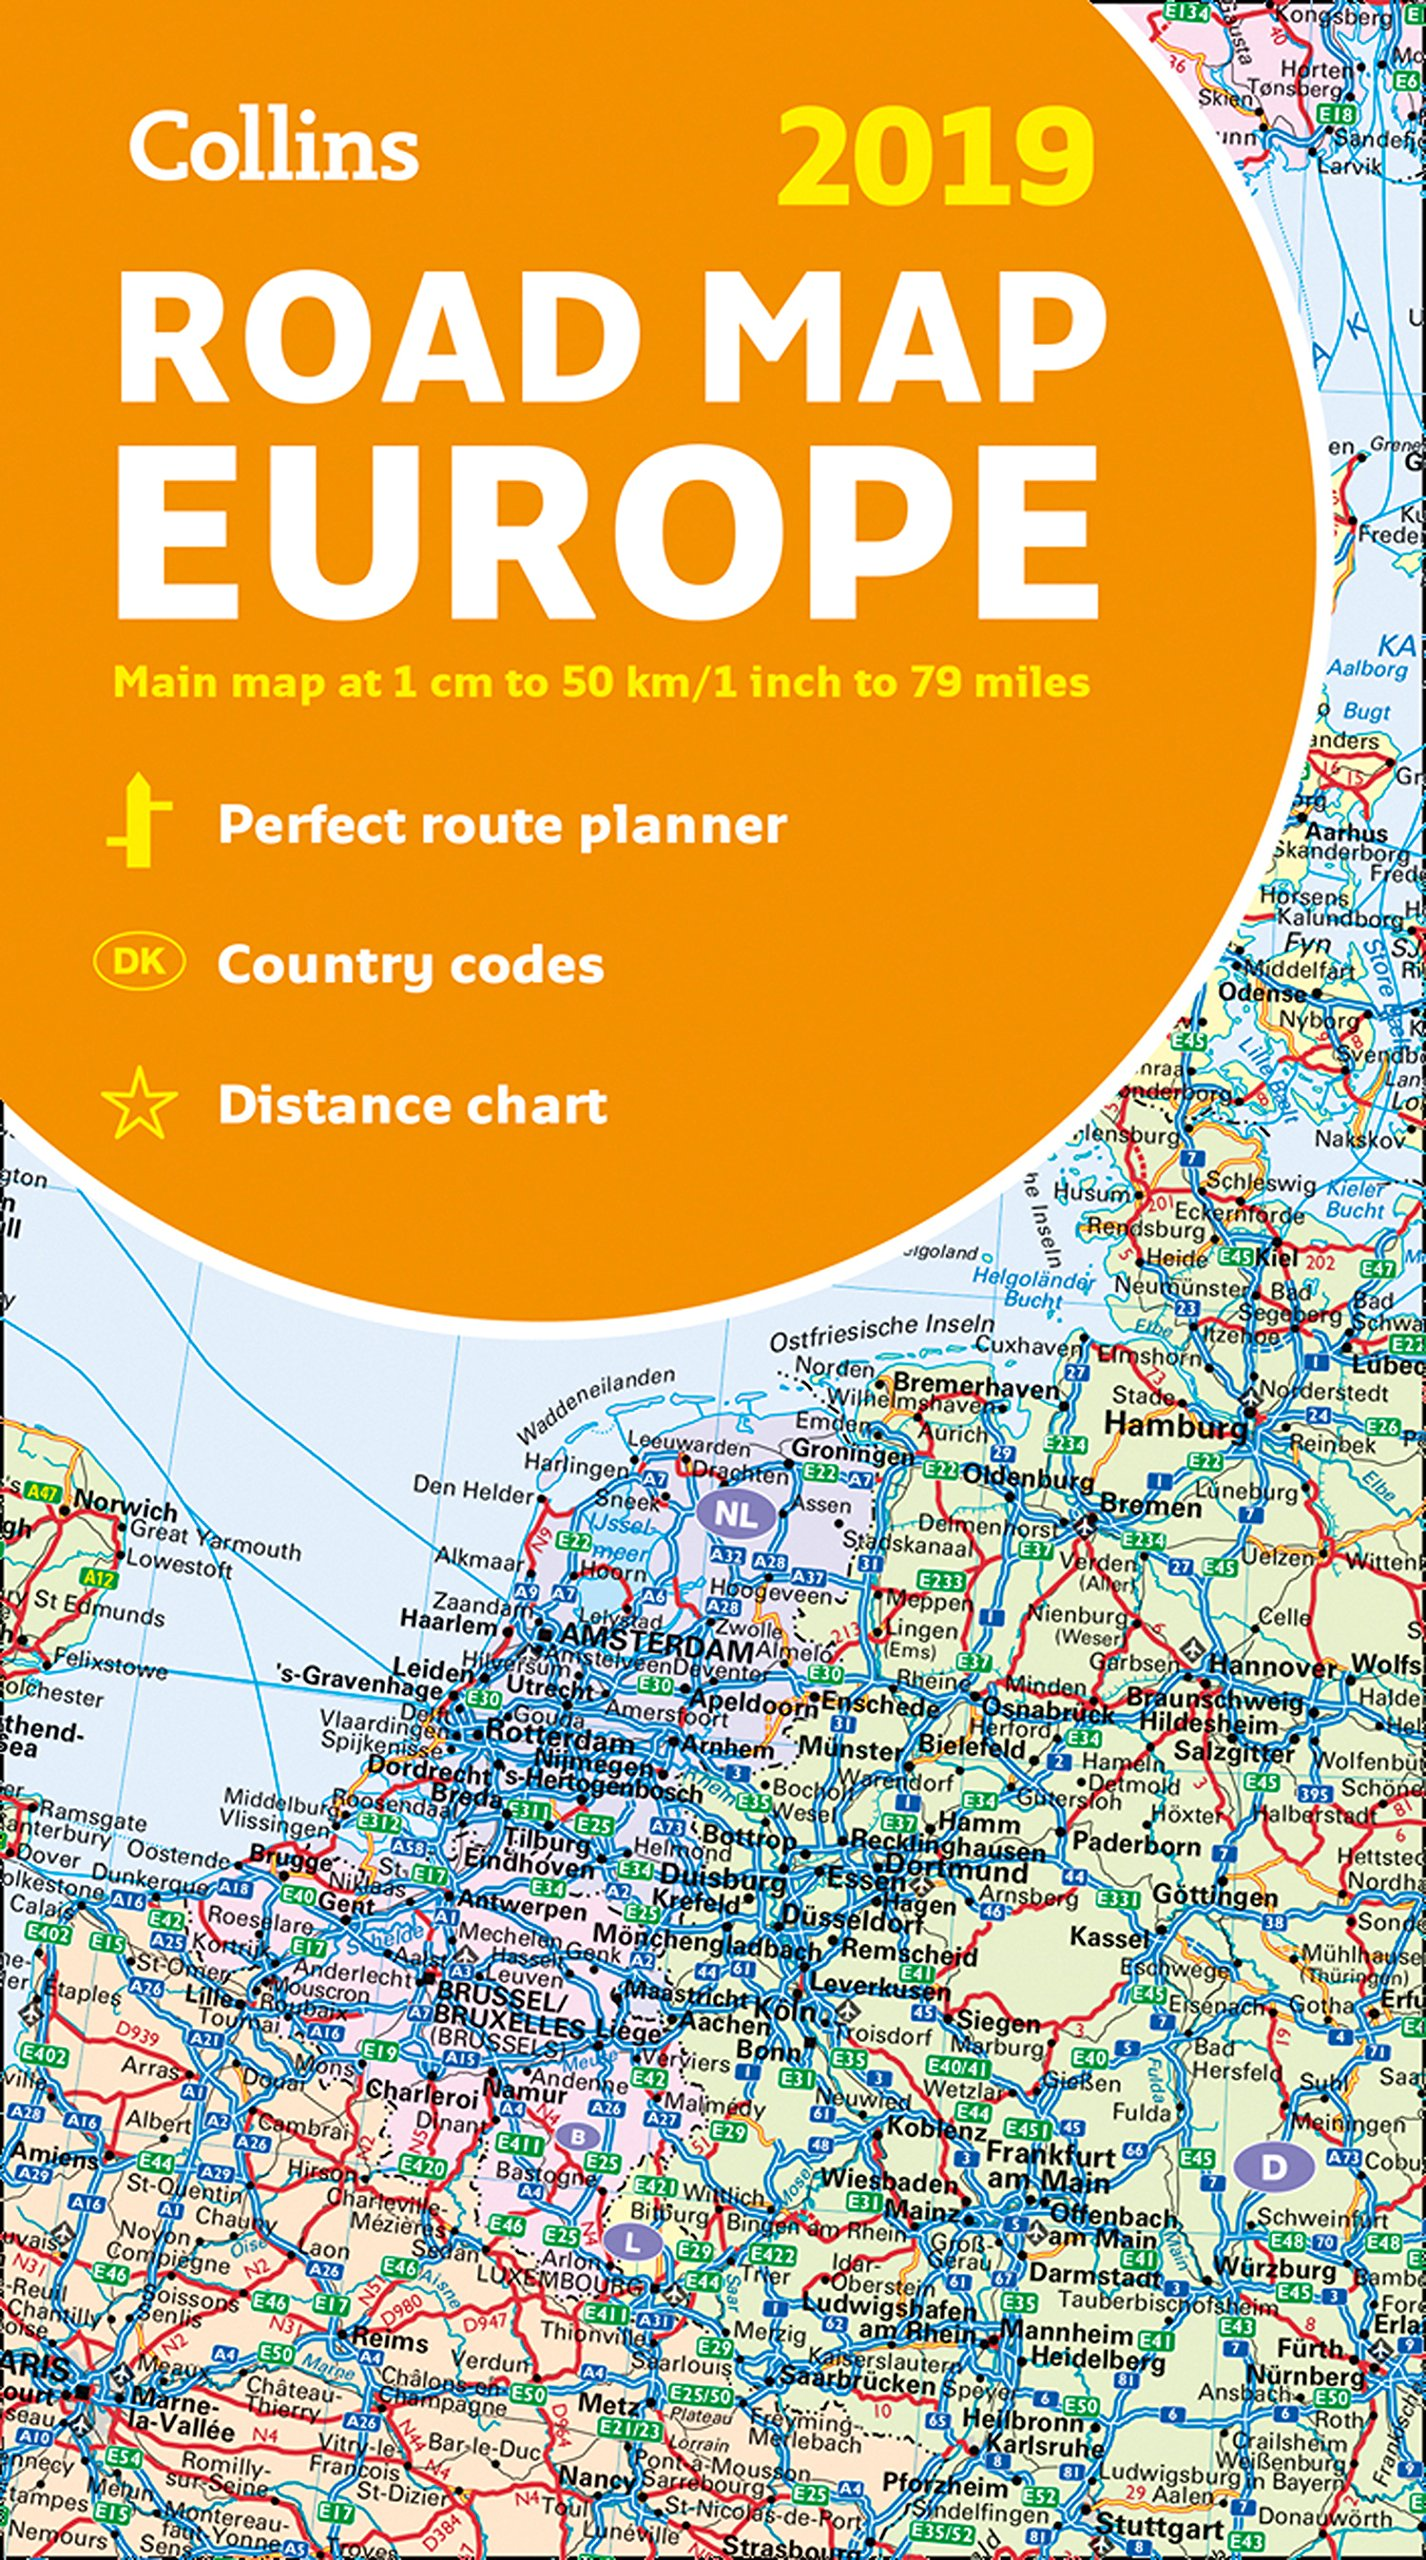 2019 Collins Map Of Europe Collins Maps Amazon Co Uk Collins